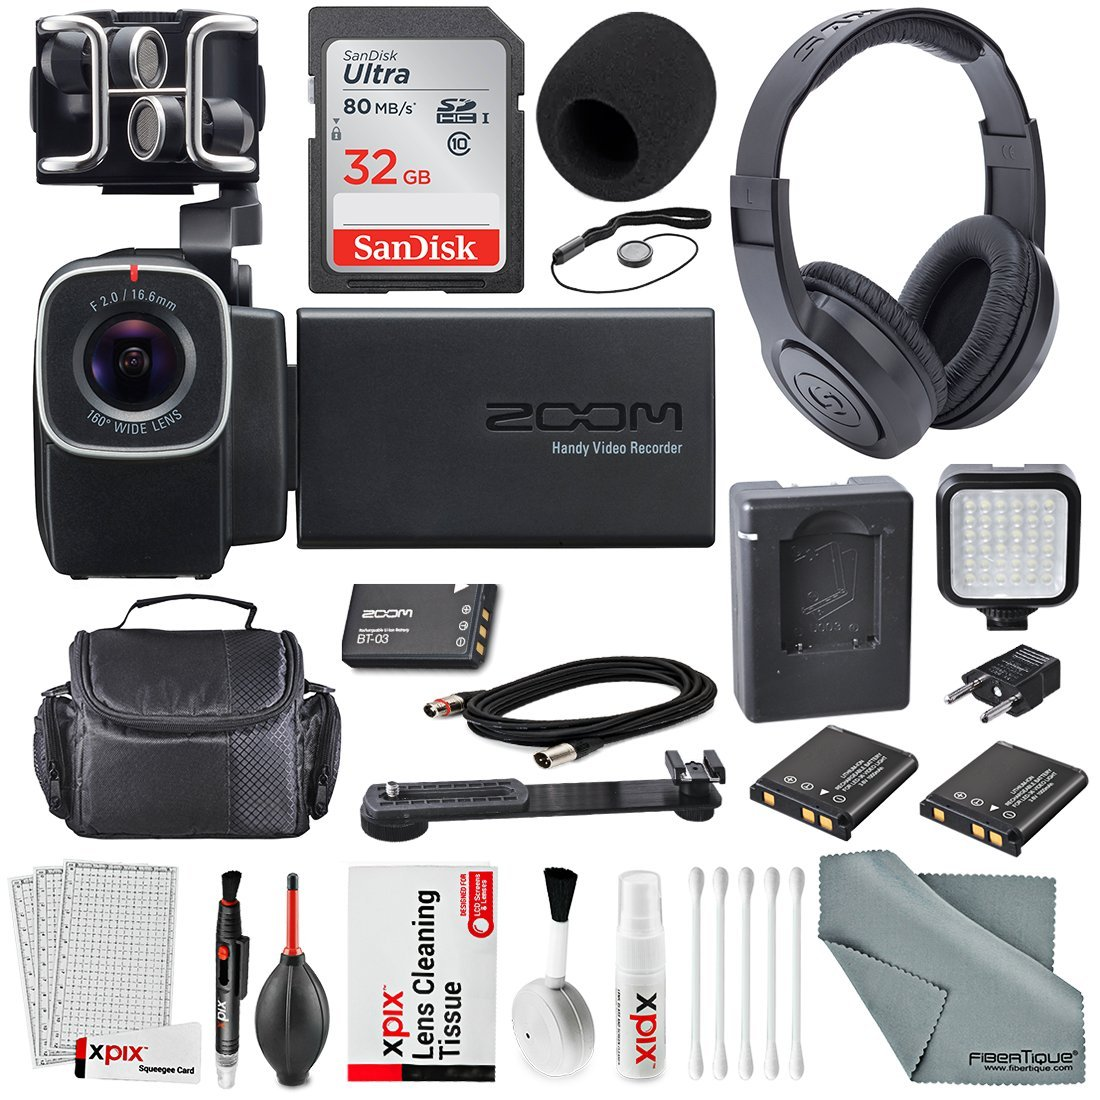 Zoom Q8 Handy Video Recorder with Samson Studio Headphones and Deluxe Accessory Bundle with Cleaning Kit